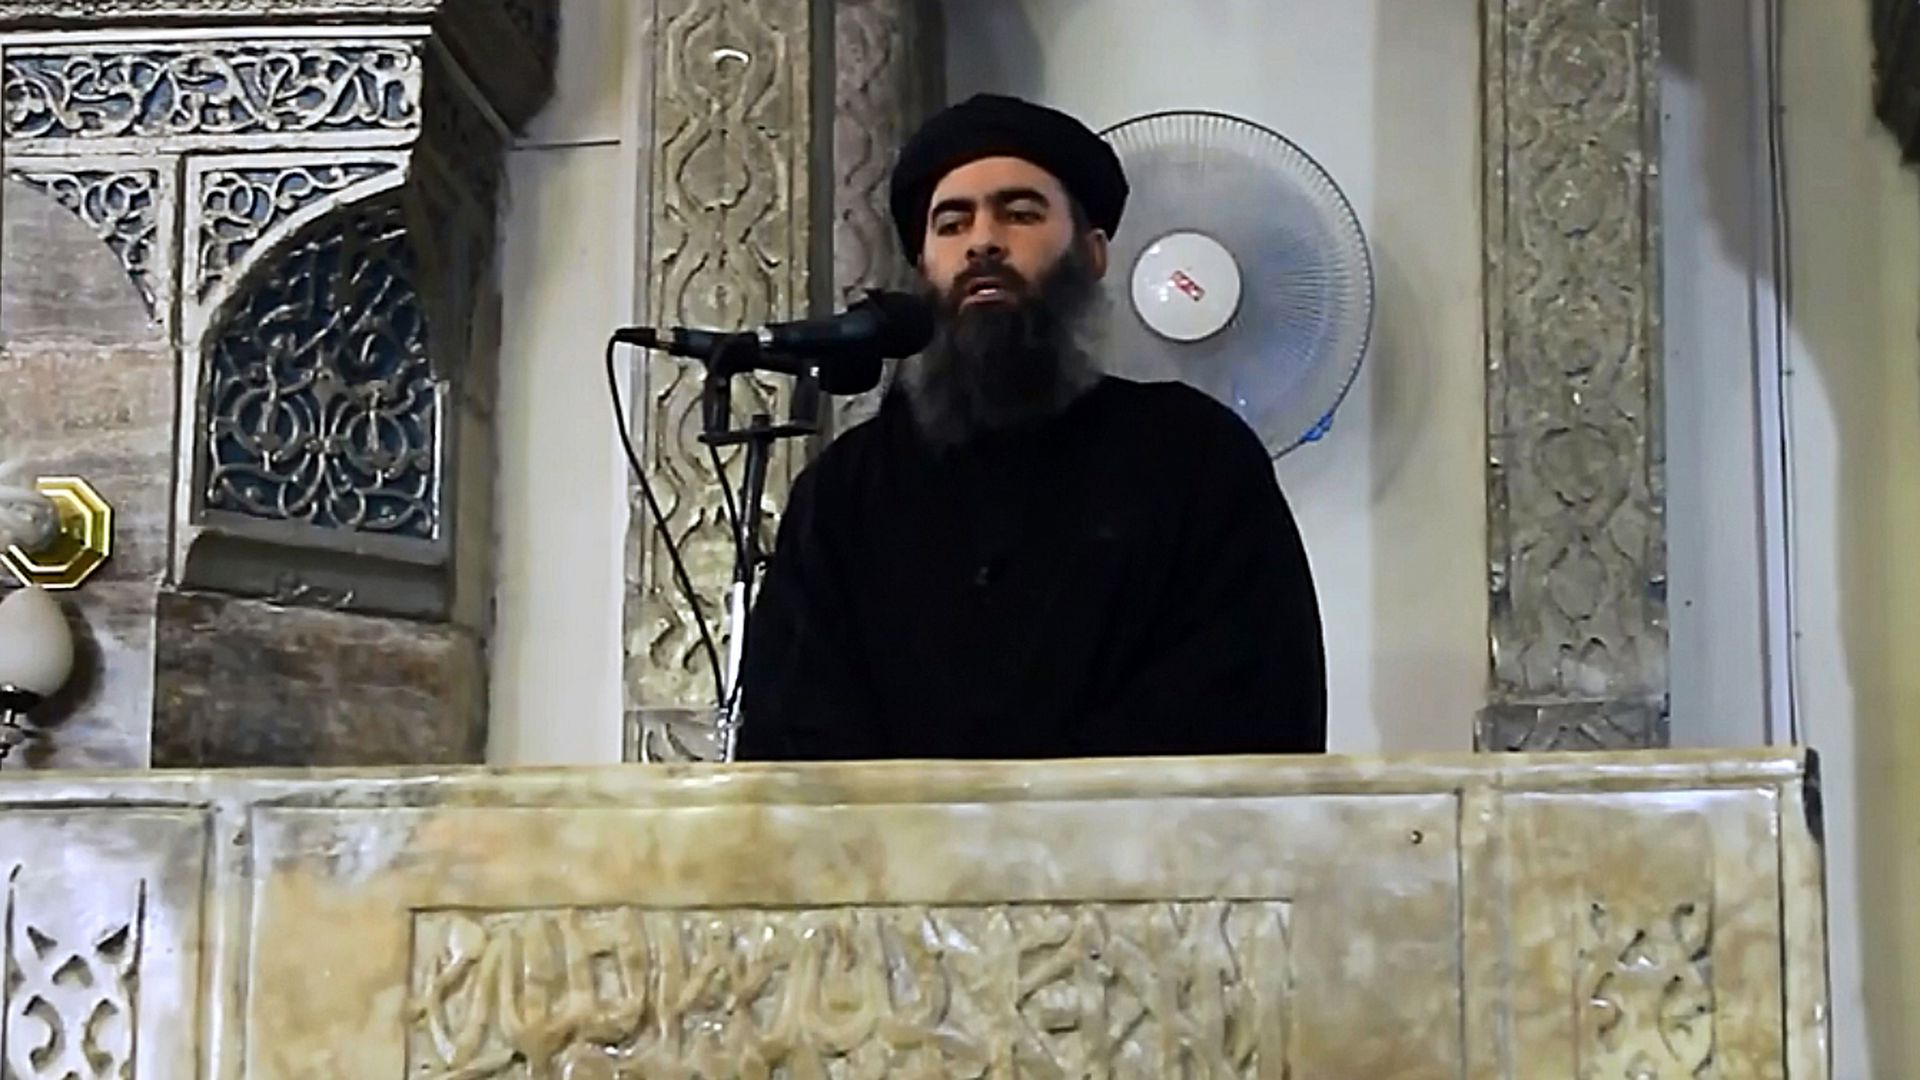 Abu Bakr al-Baghdadi in video footage speaking at a microphone.